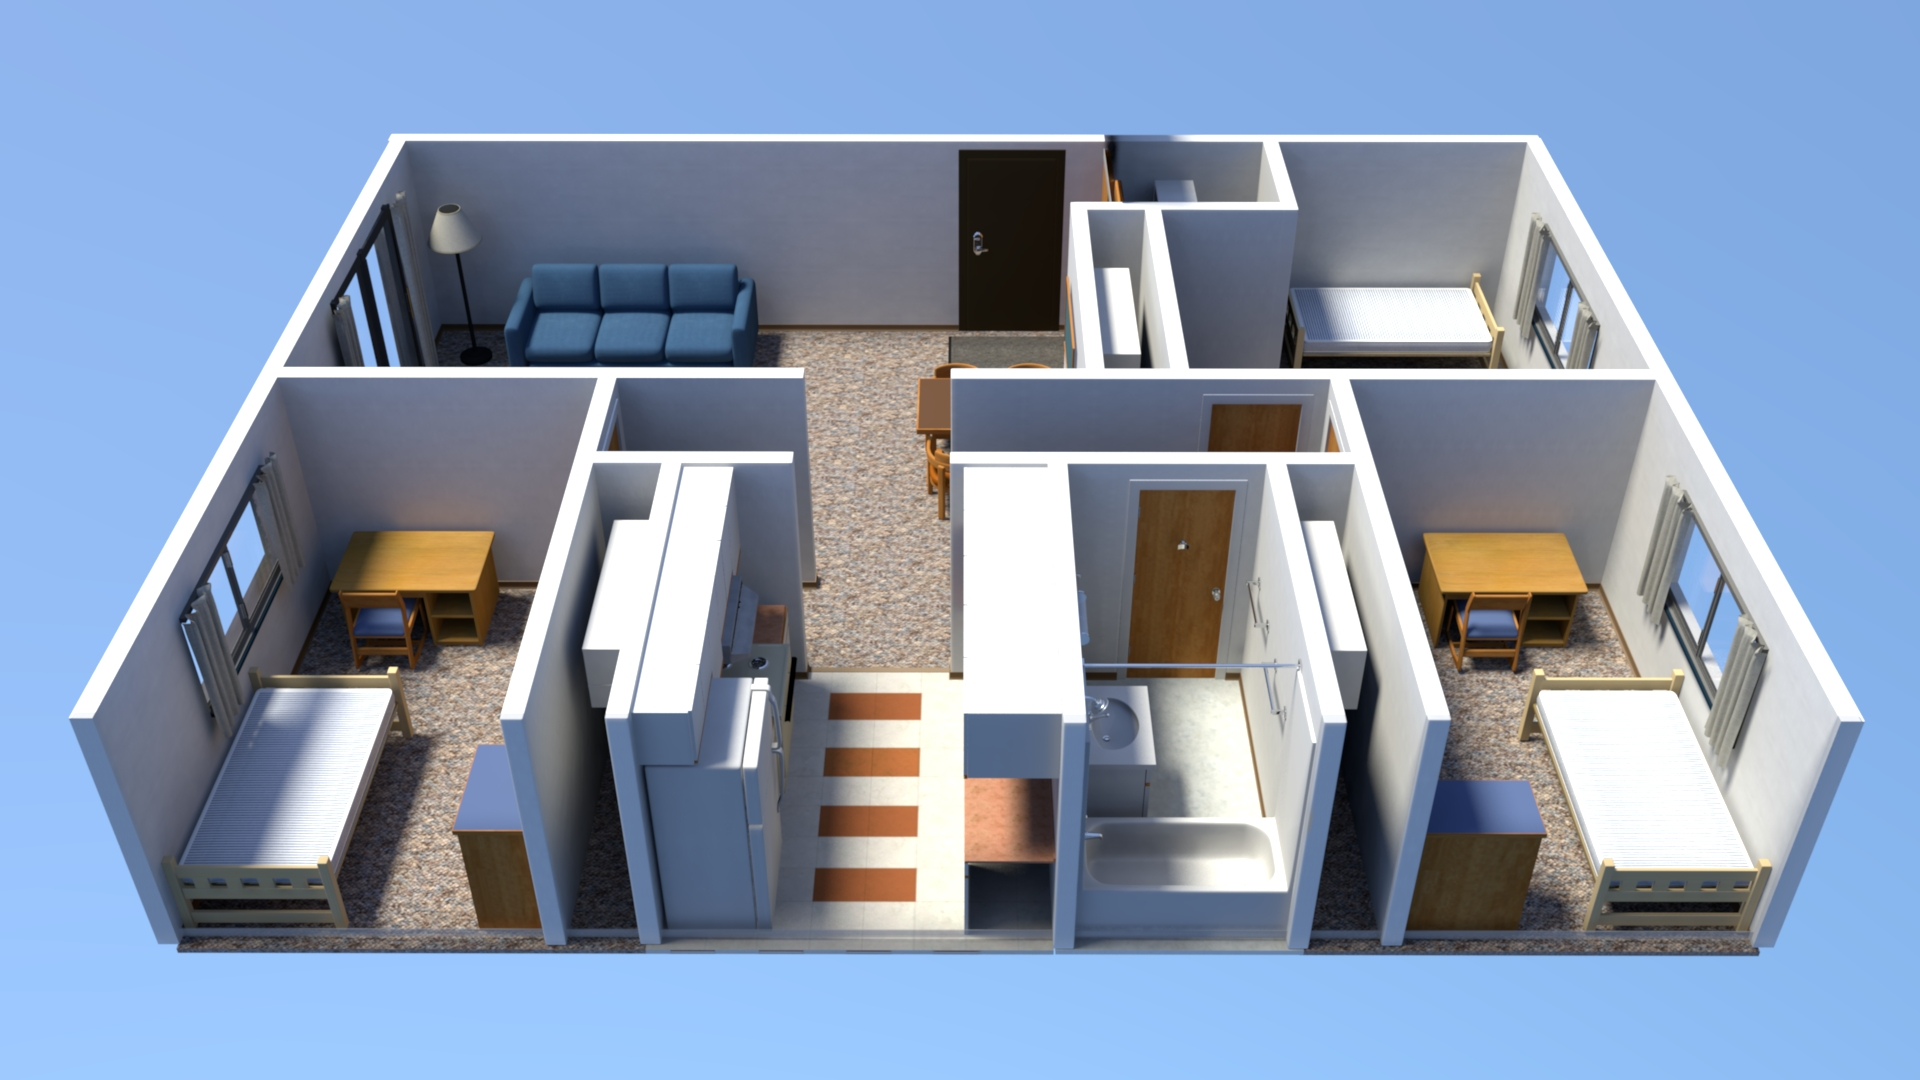 3 Bedroom Apartment Layout From Kitchen